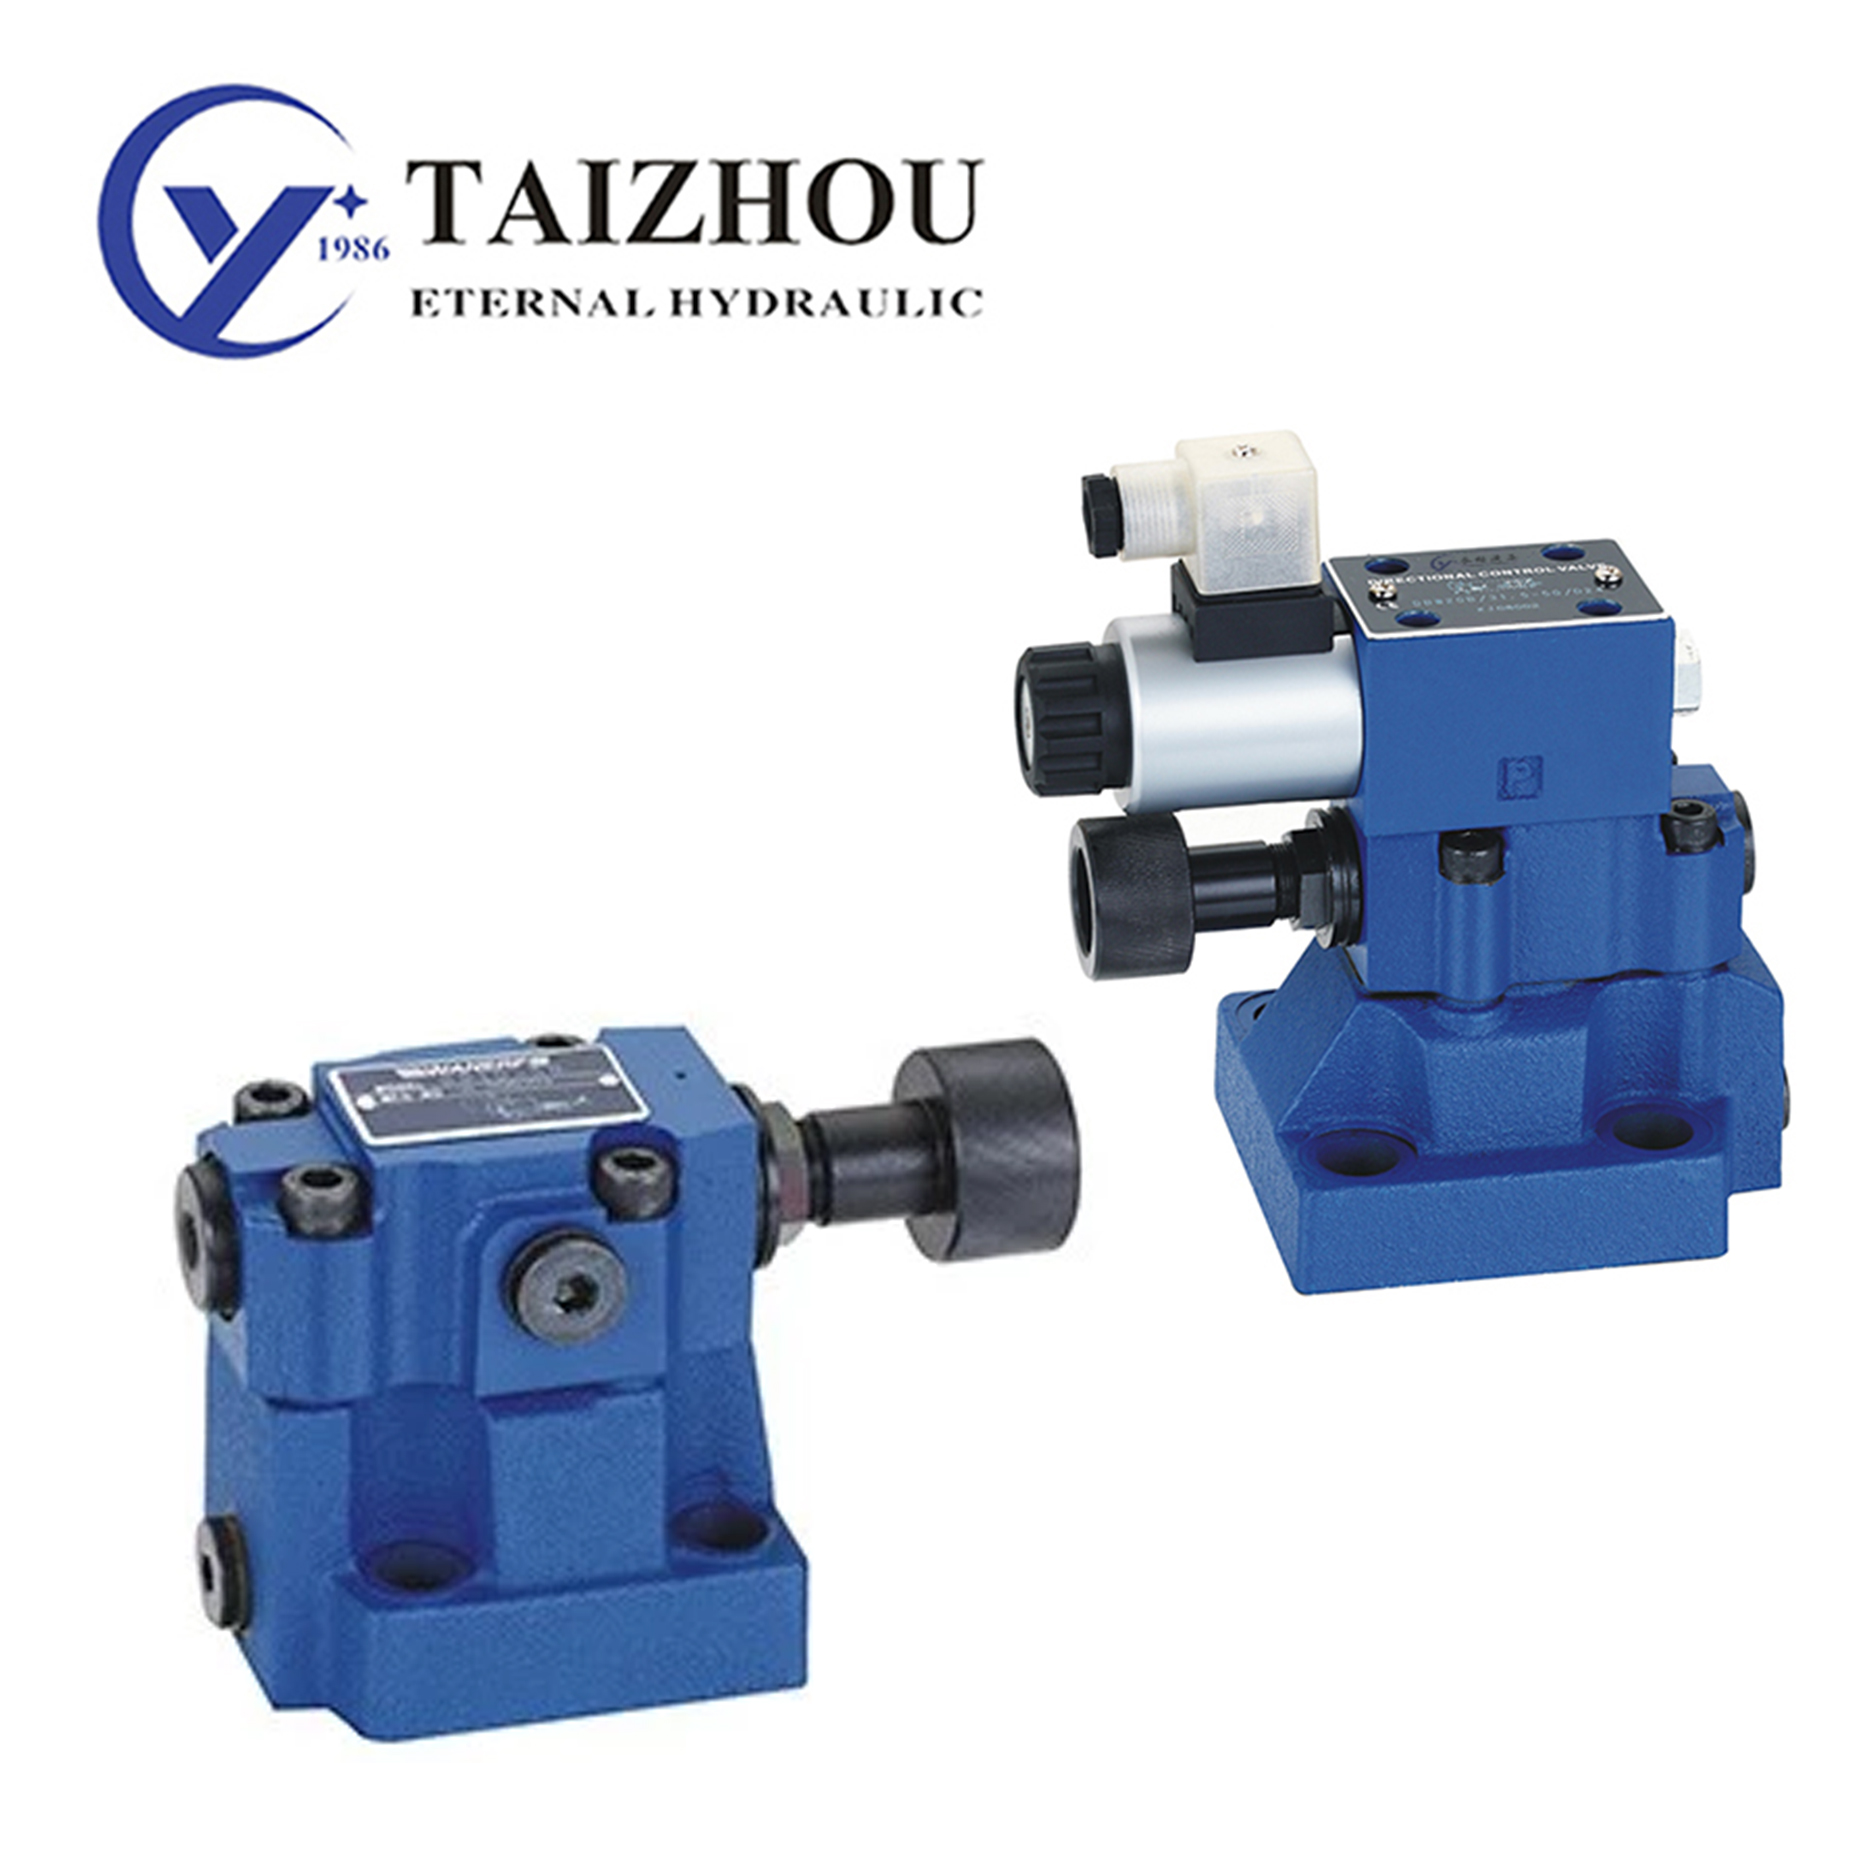 DB(W) Pressure Pilot Operated Relief Valve